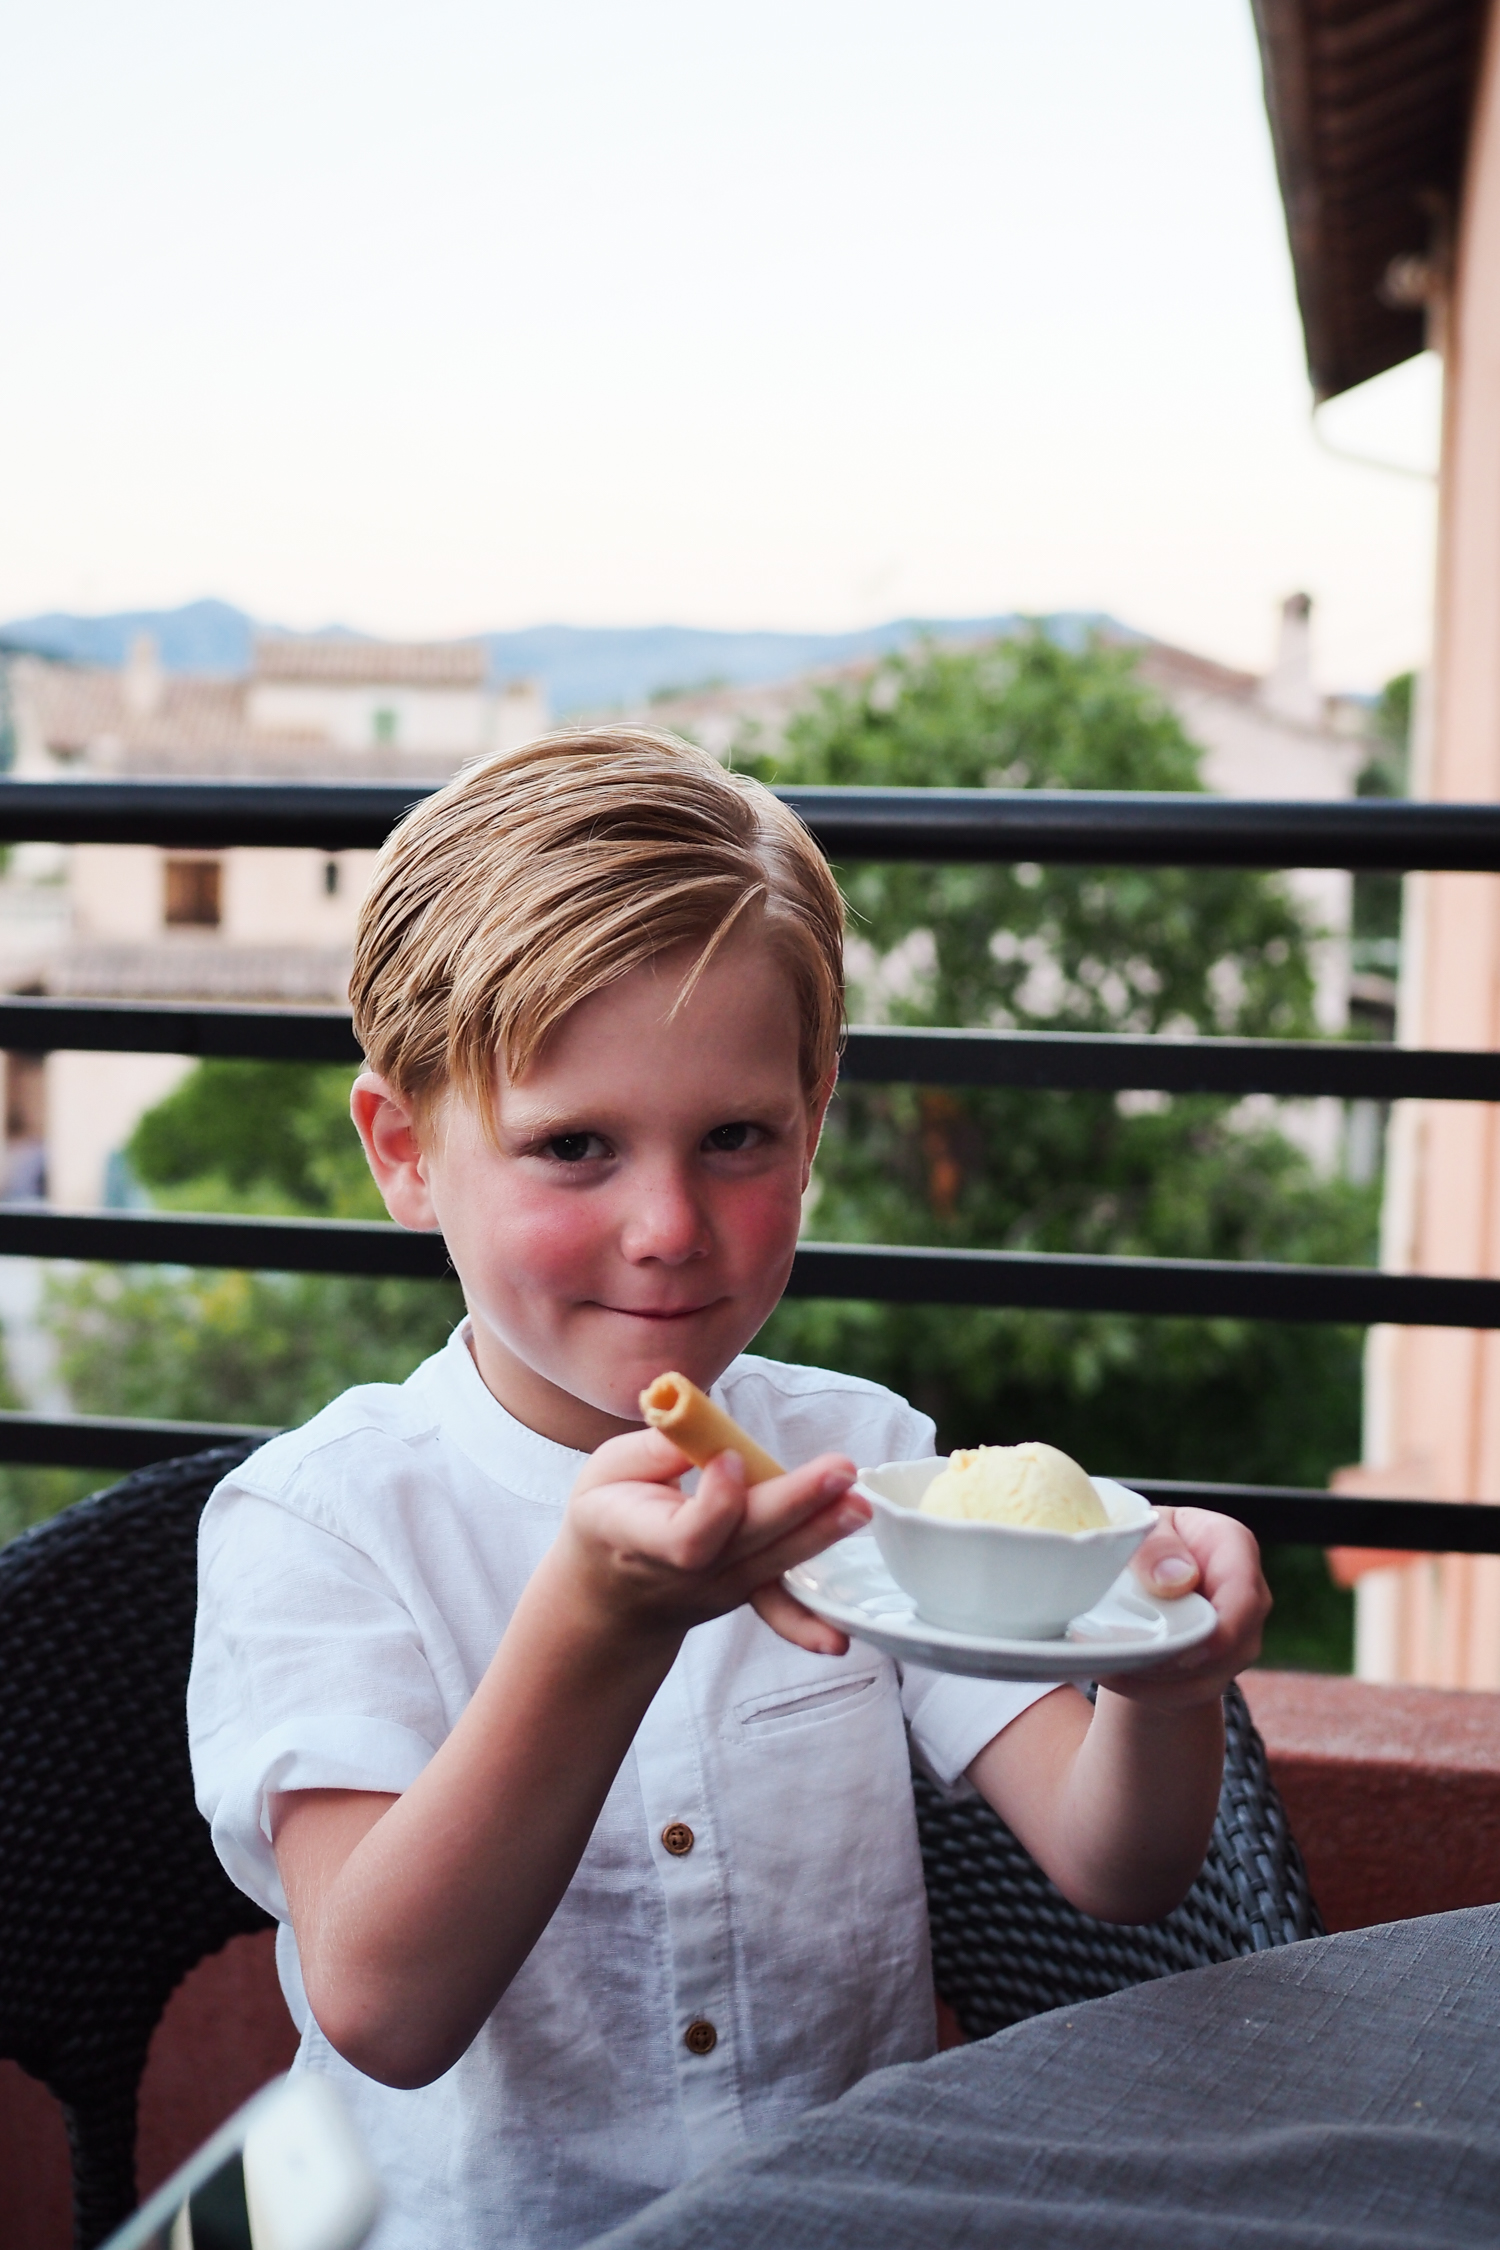 My blogger photo diary of my family trip to Nice in the south of France with Airbnb